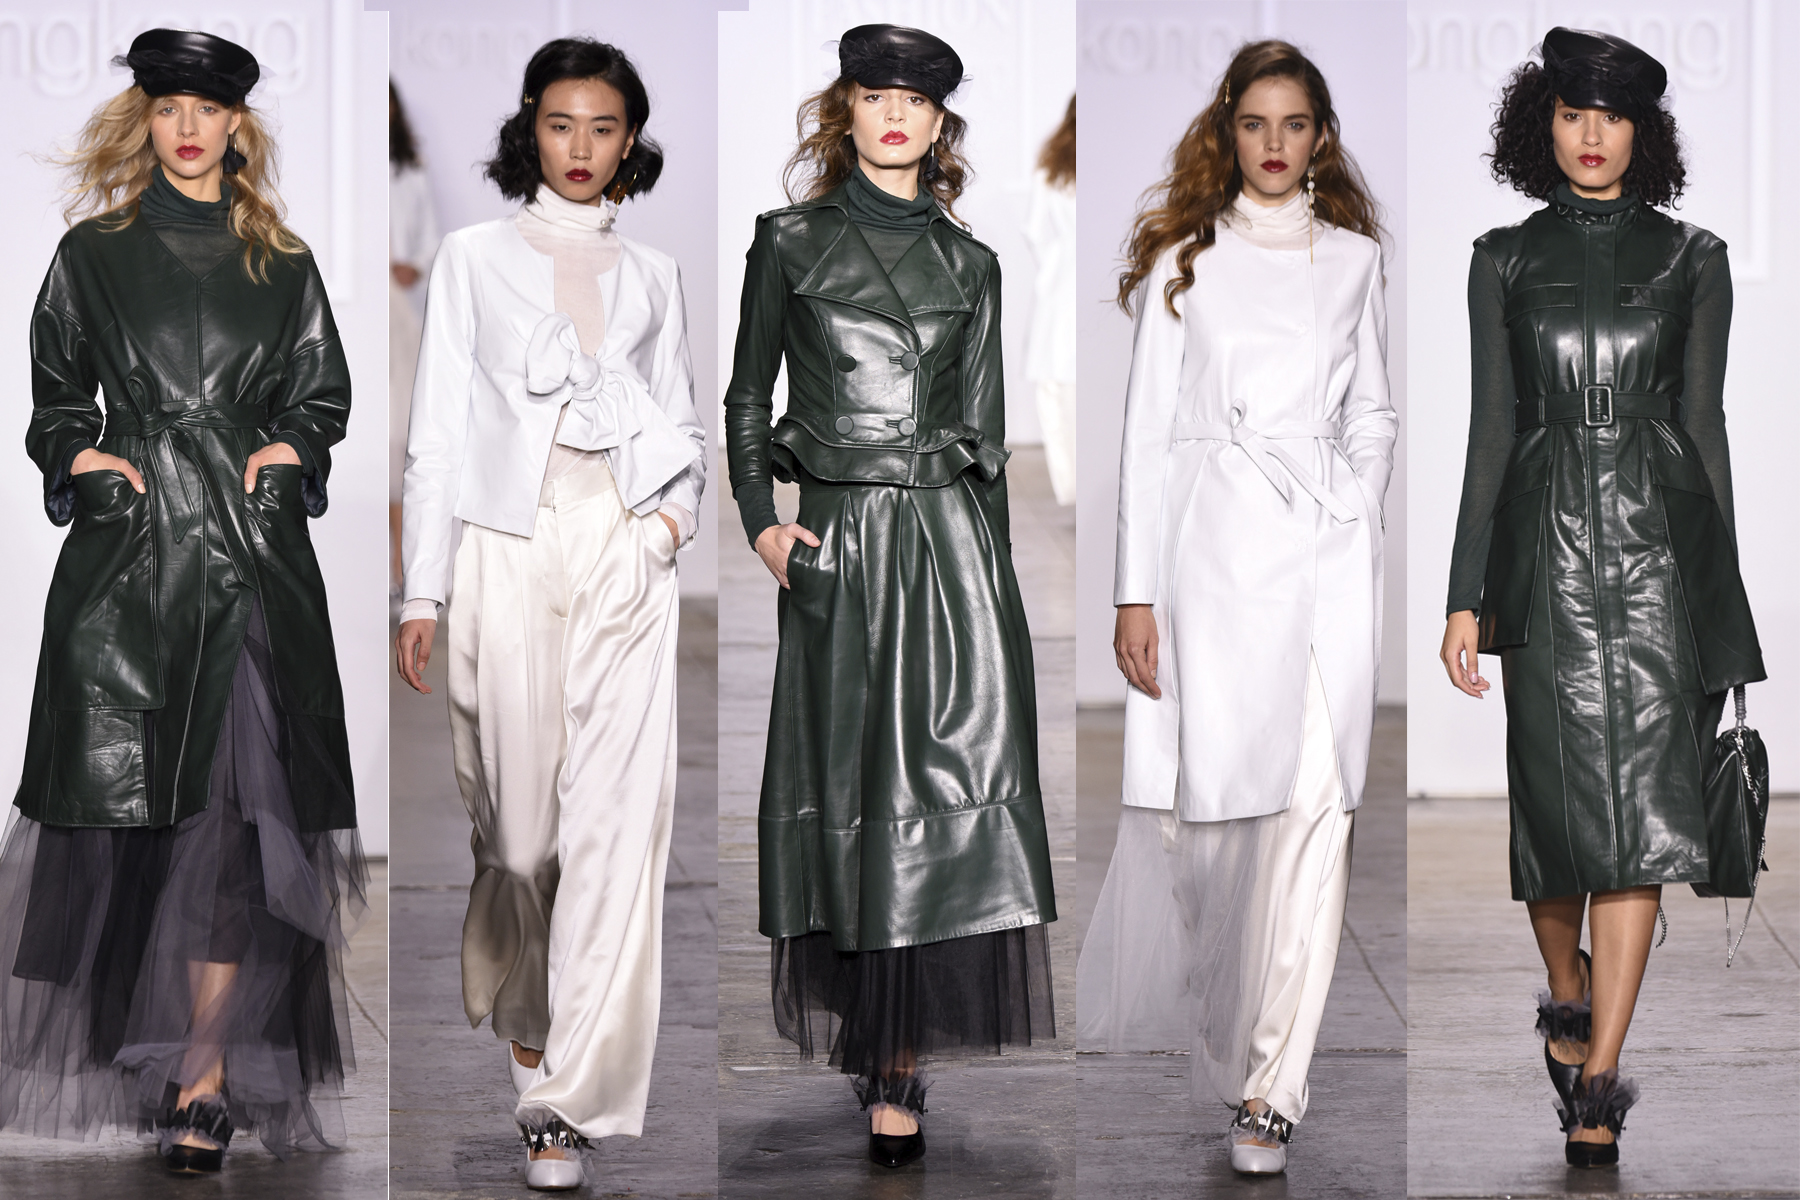 Anveglosa NYFW FW 2019 runway looks as favorited by Erin Leigh of She's Red Haute